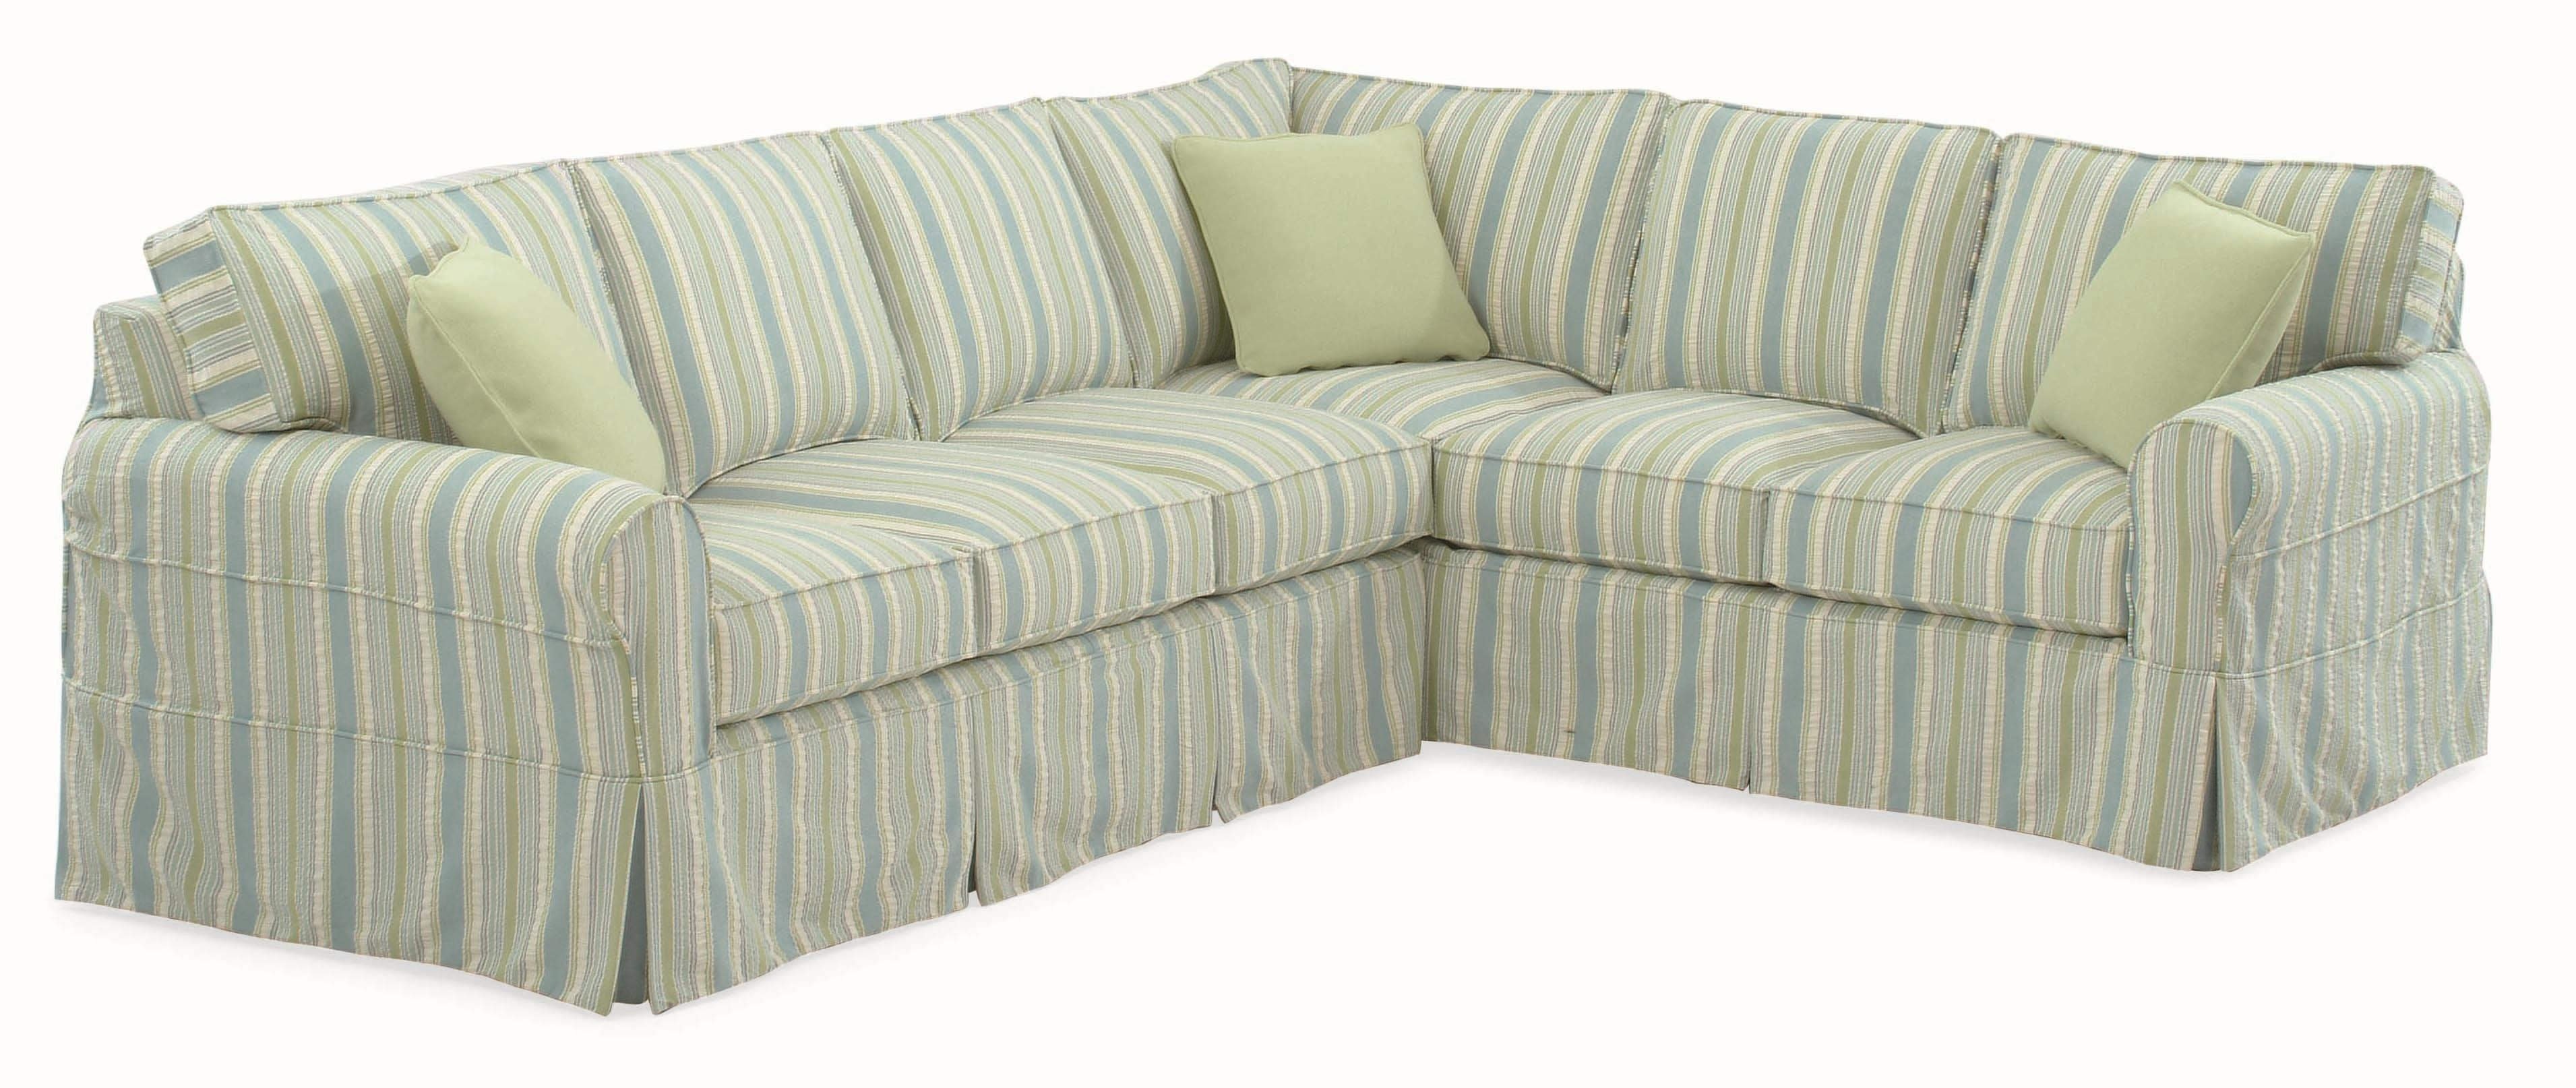 Braxton Culler 728 Casual Sectional Sofa With Rolled Arms And Inside Braxton Sofas (View 13 of 20)